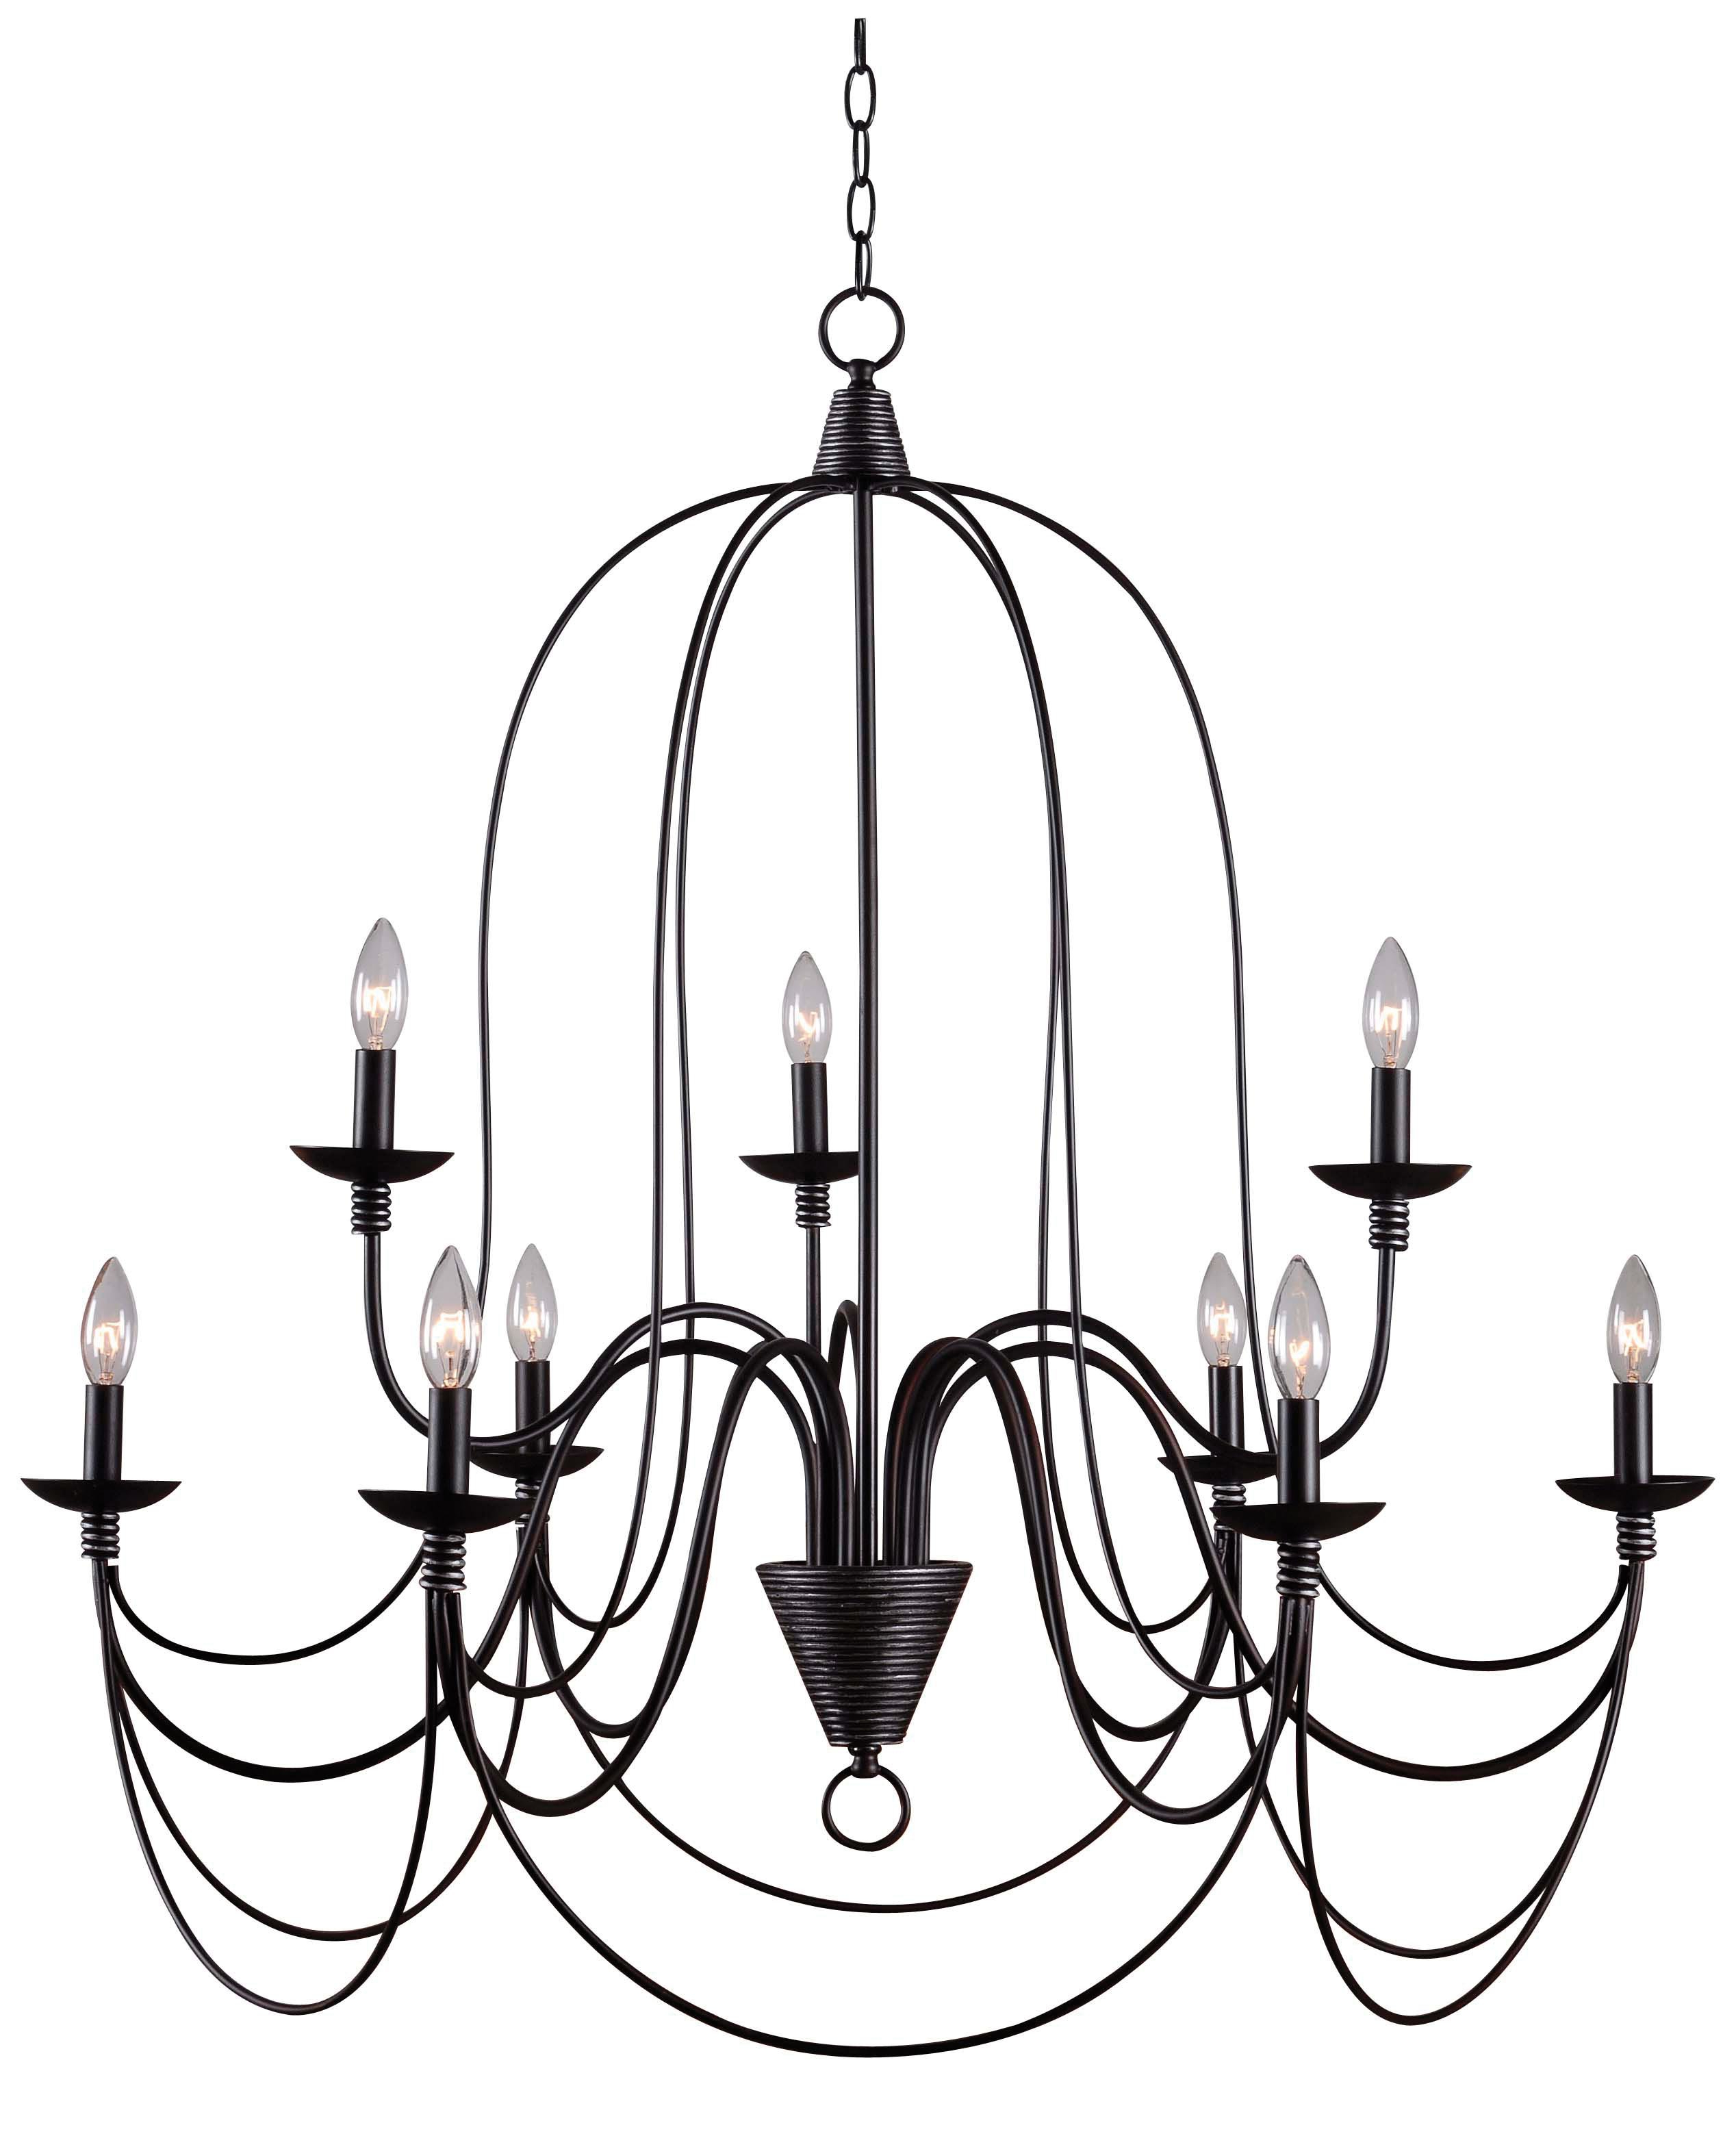 Kollman 9 Light Candle Style Chandelier In Latest Giverny 9 Light Candle Style Chandeliers (View 14 of 25)